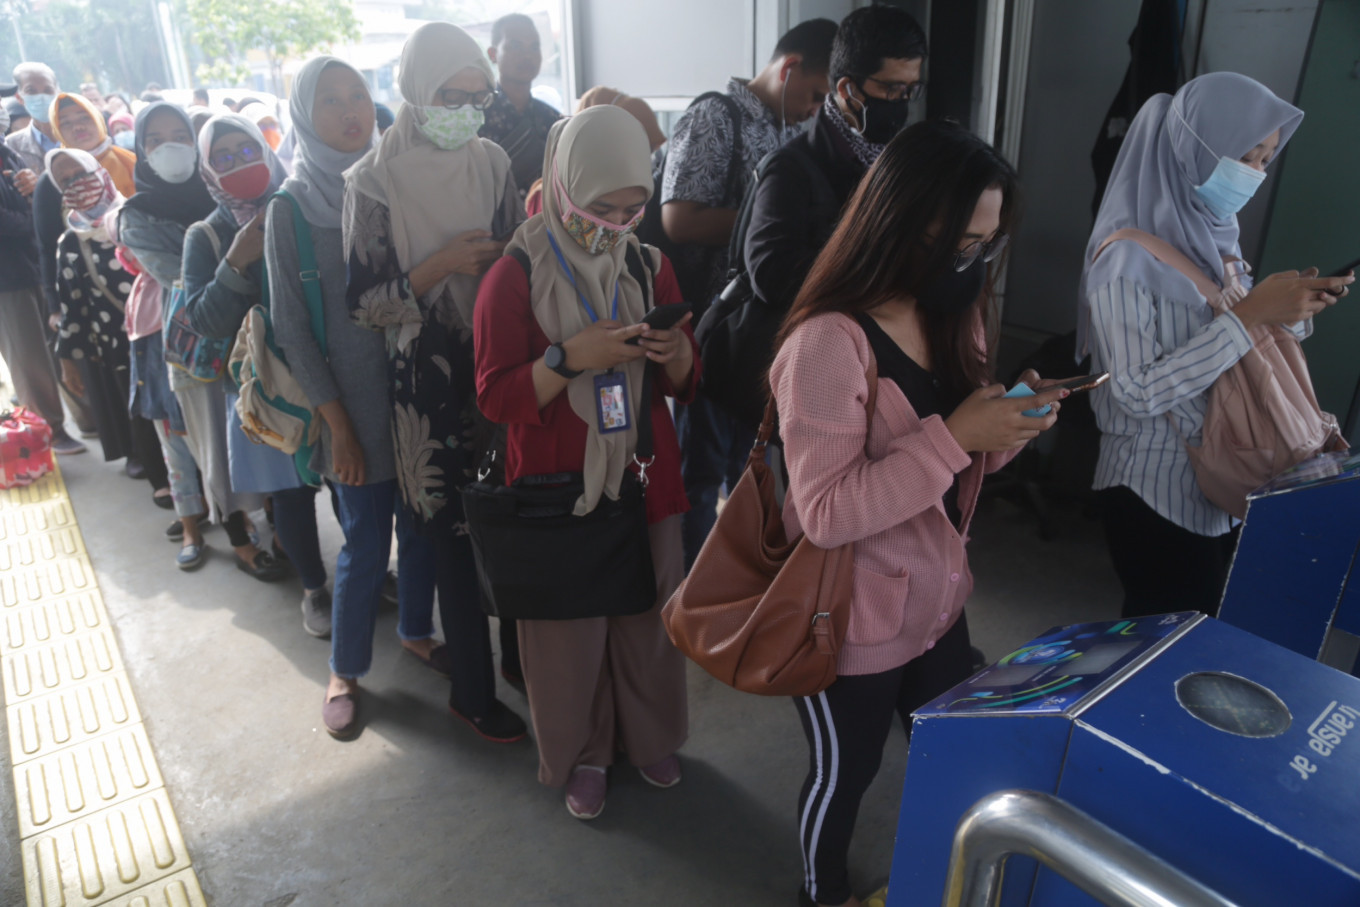 MRT, LRT and Transjakarta limit passenger numbers, but resume normal operating hours